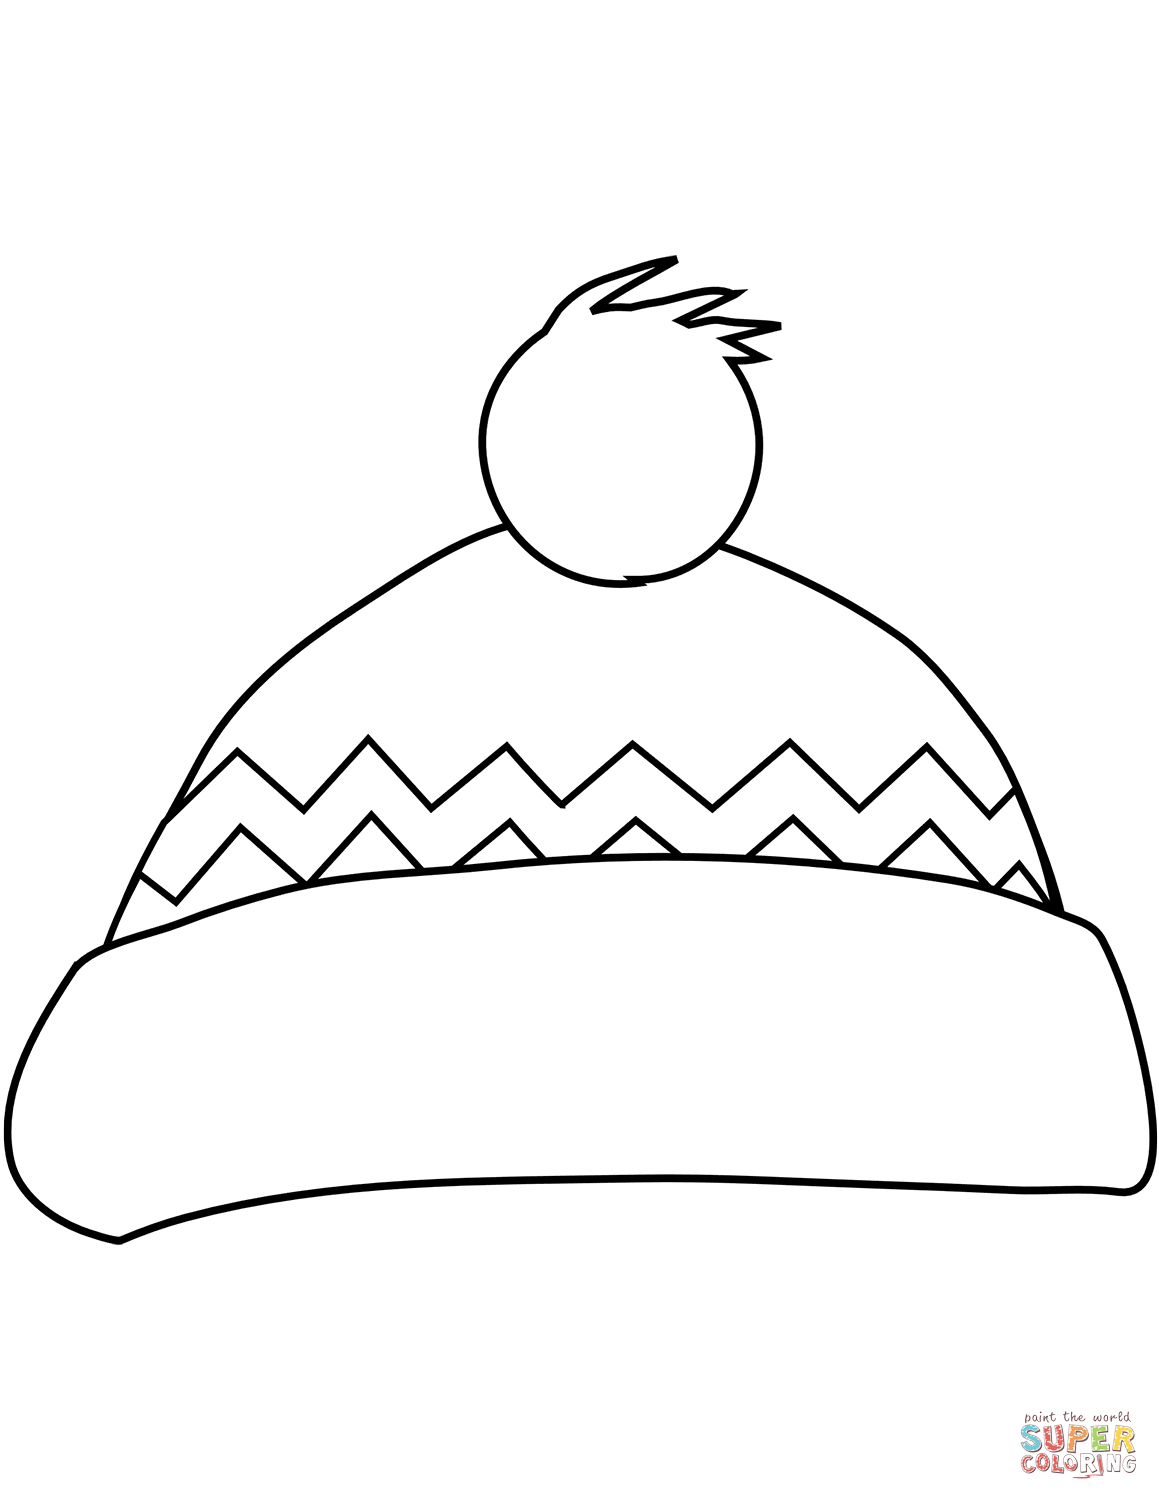 Winter Bobble Hat Coloring Page Free Printable Coloring Pages